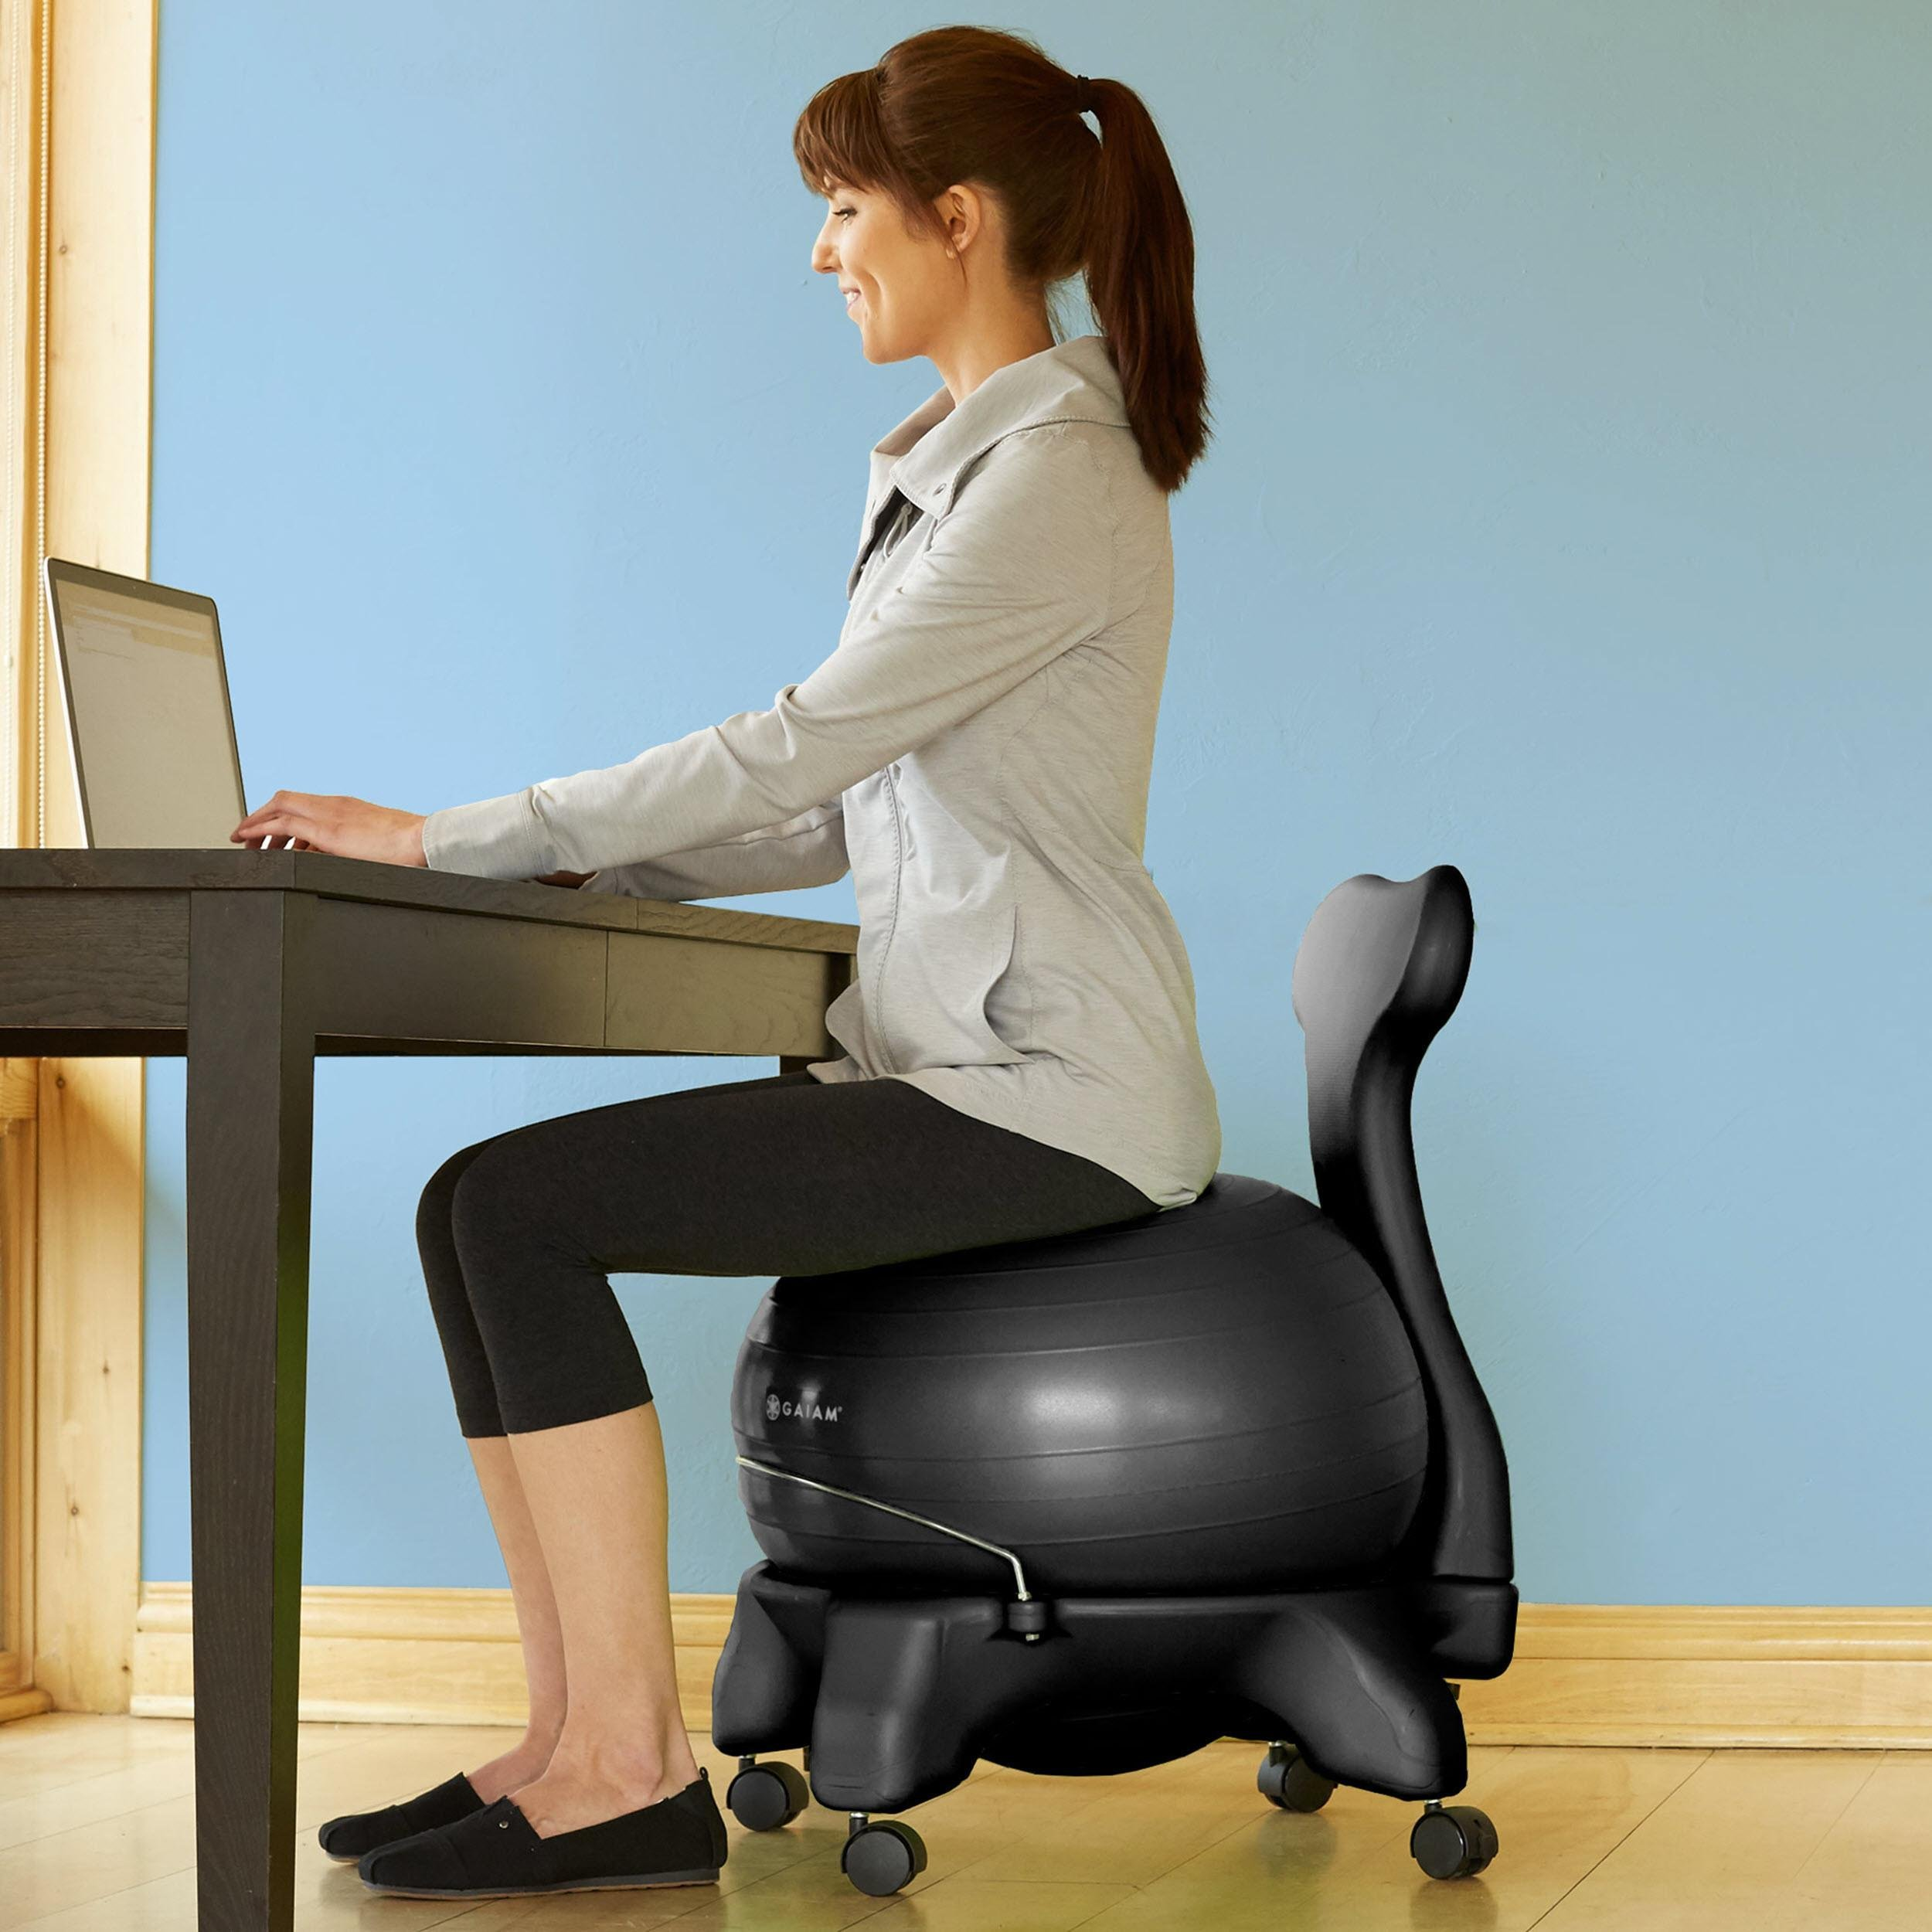 Sitting Chair: Amazon.com: Gaiam Balance Ball Chair